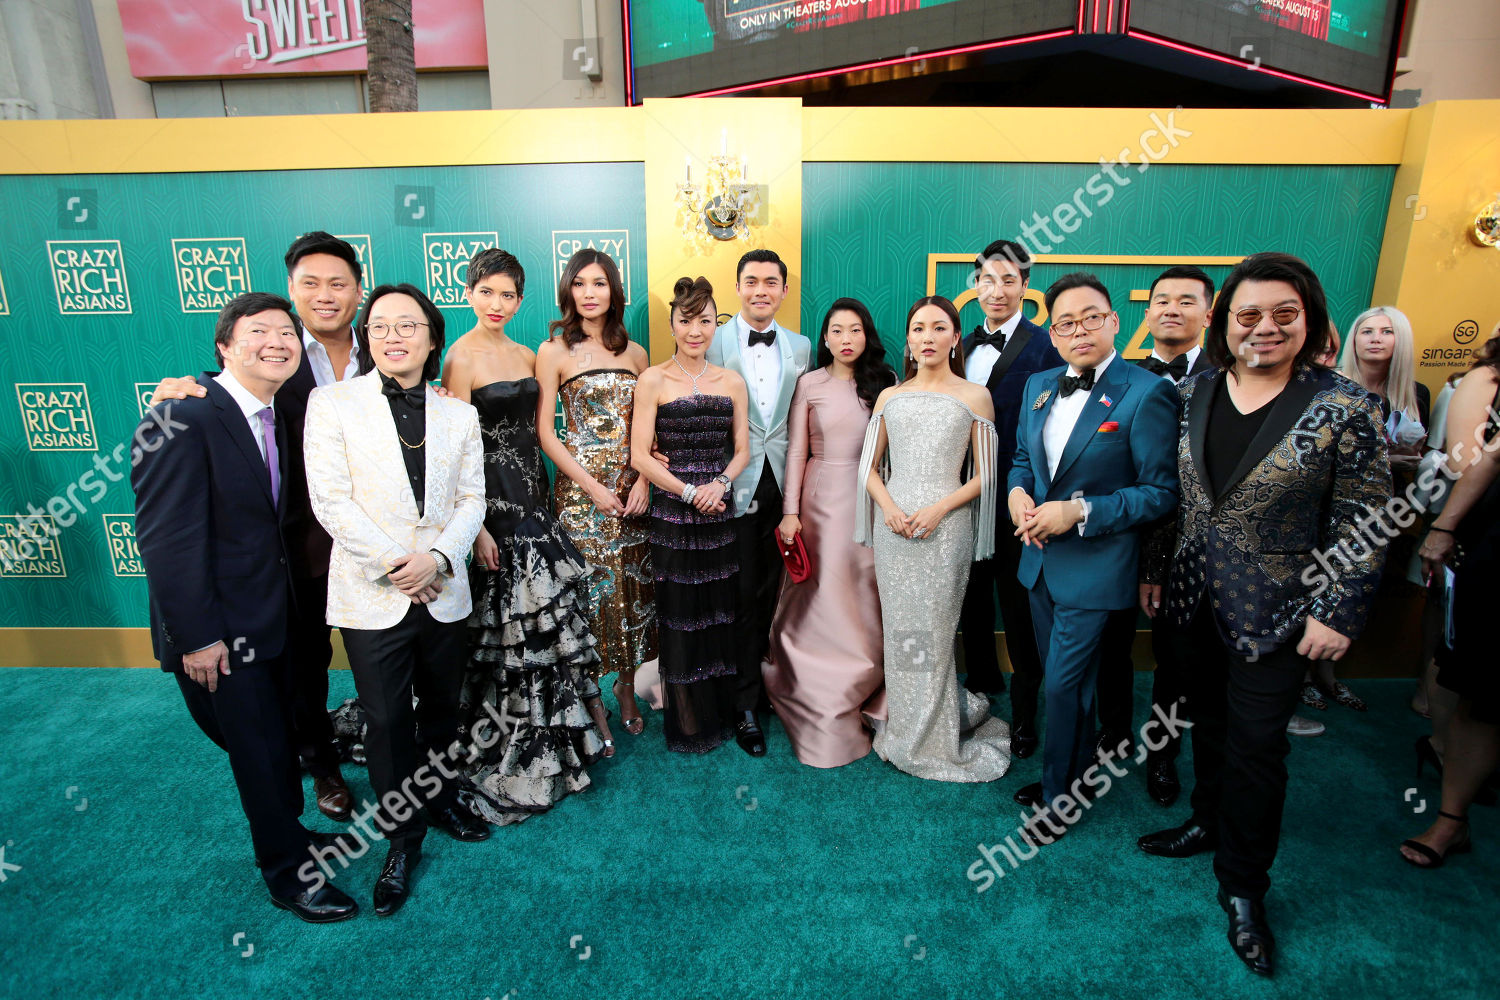 The all-East Asian cast, director, (Jon M. Chu), and author, (Kevin Kwan), of